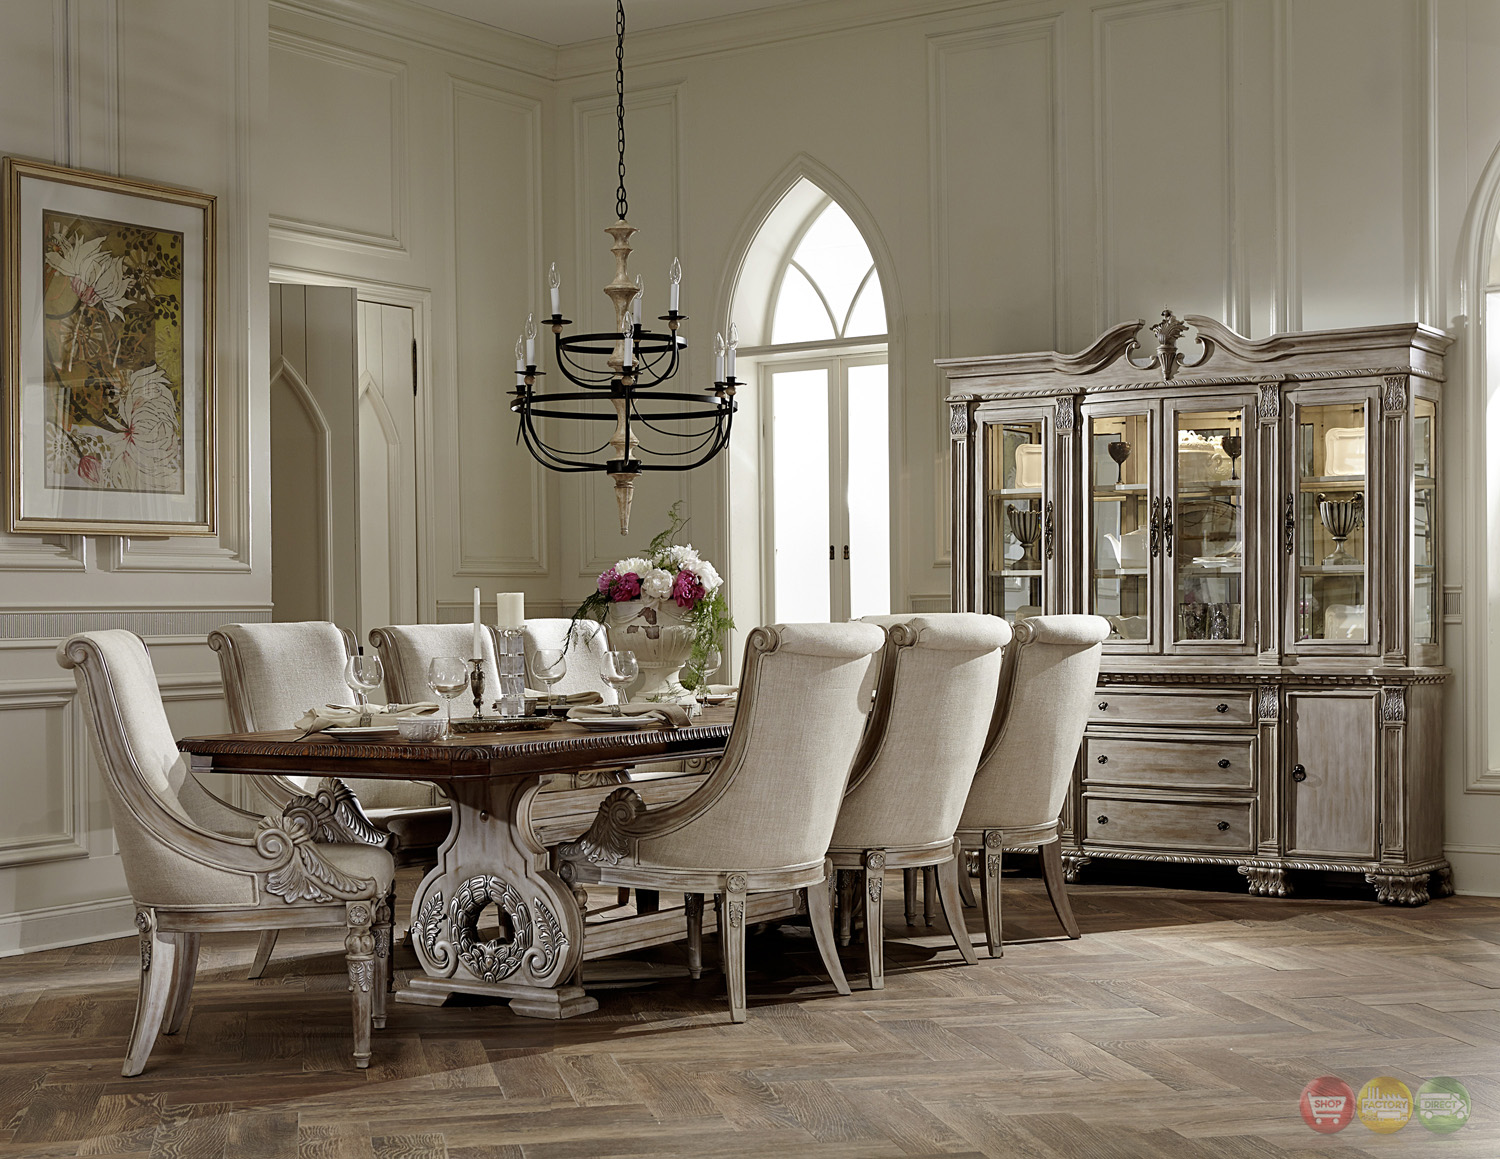 Elegant Formal Dining Room Furniturecream Colored Formal Dining ...